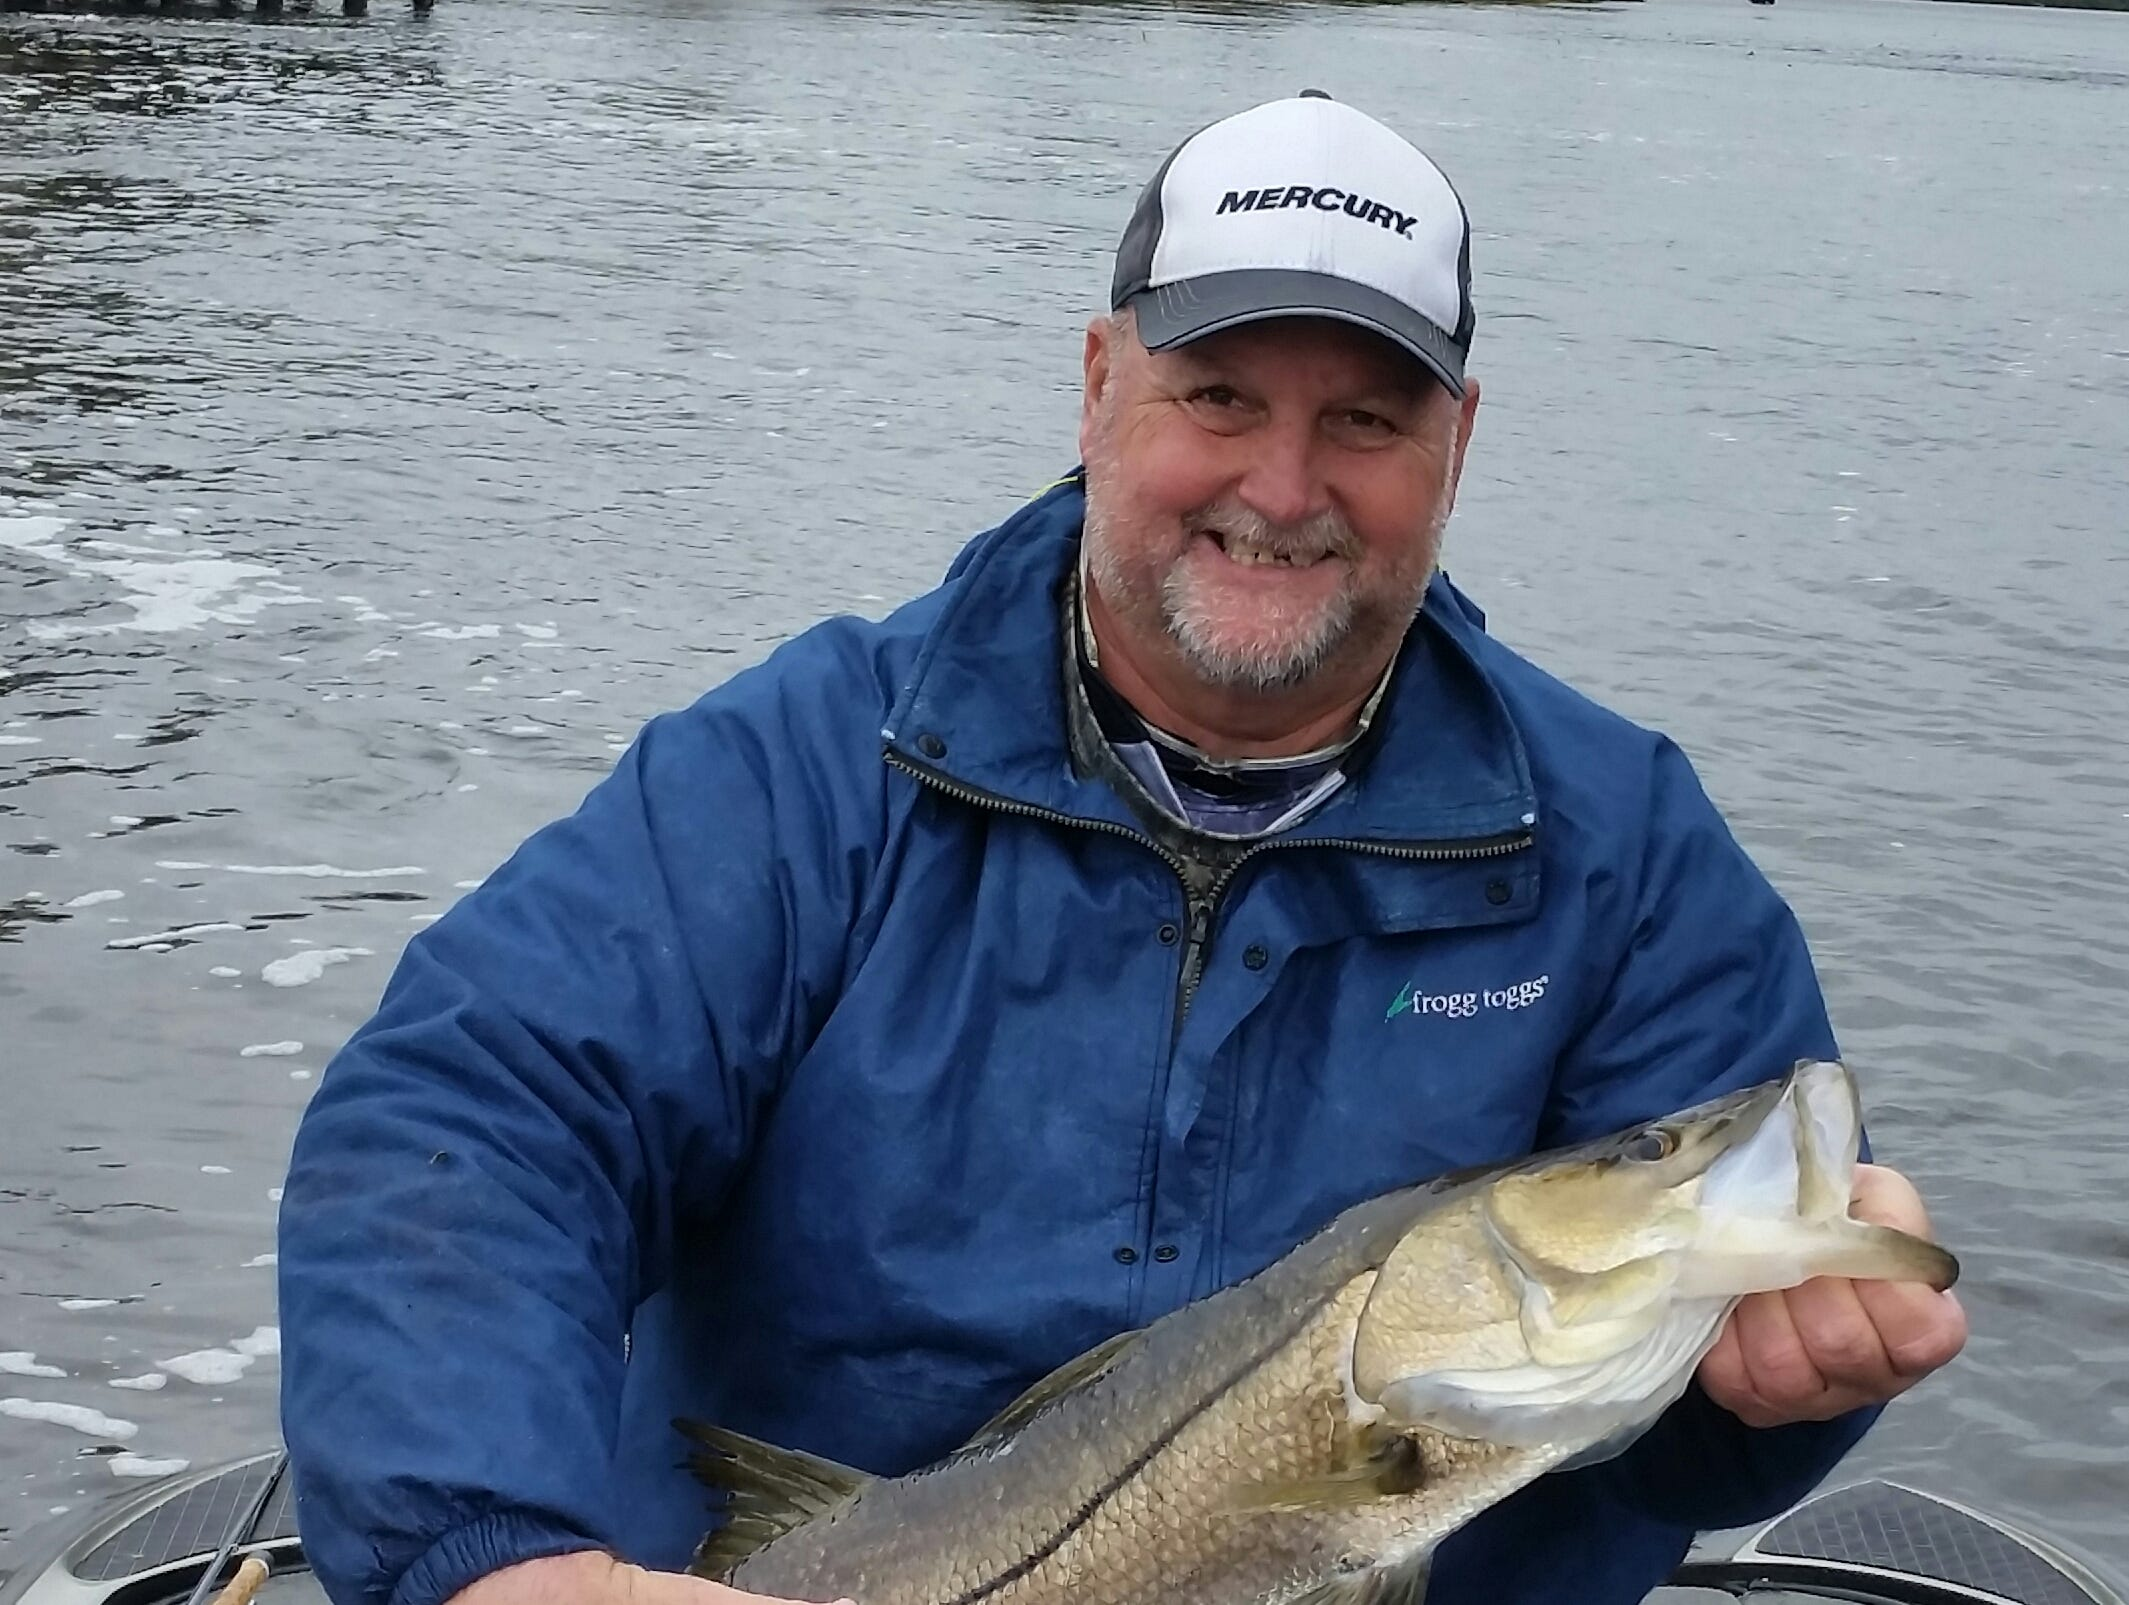 Capt. JoGene  Holaway  with his biggest freshwater snook this year caught while fishing in a largemouth bass tournament on the Caloosahatchee River. The fish was released.